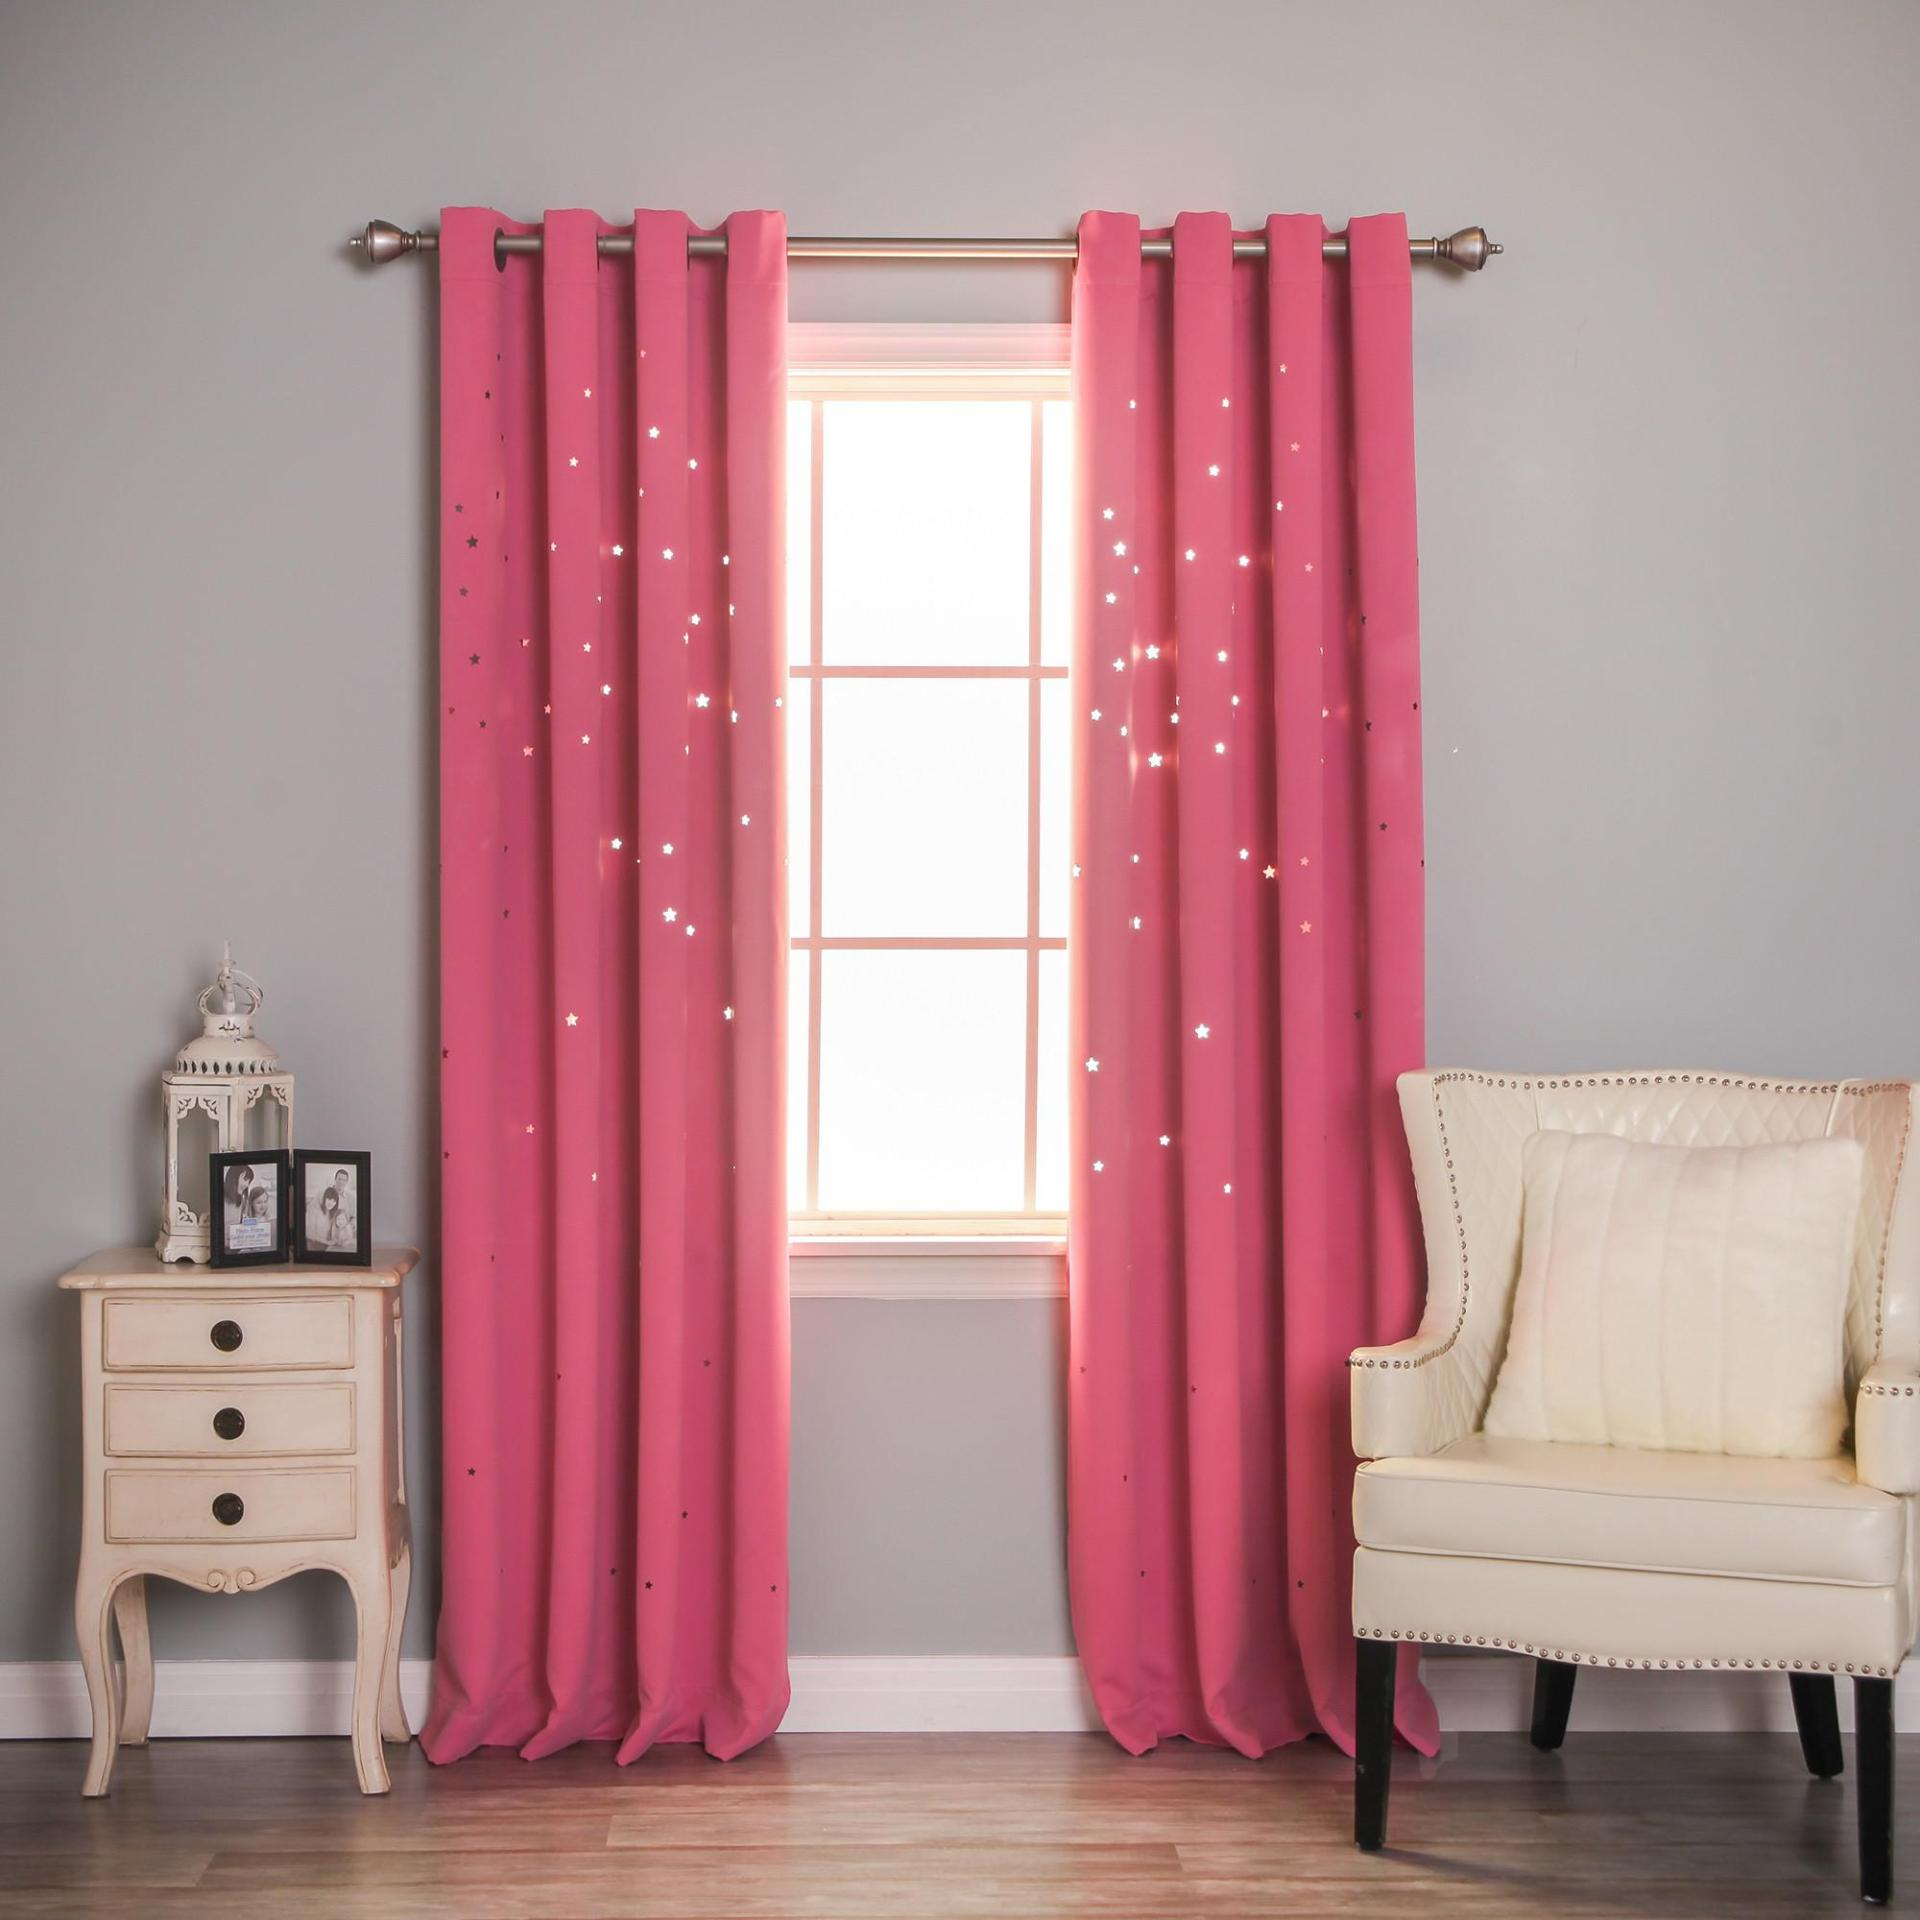 Image of: Pink Eyelet Blackout Curtains